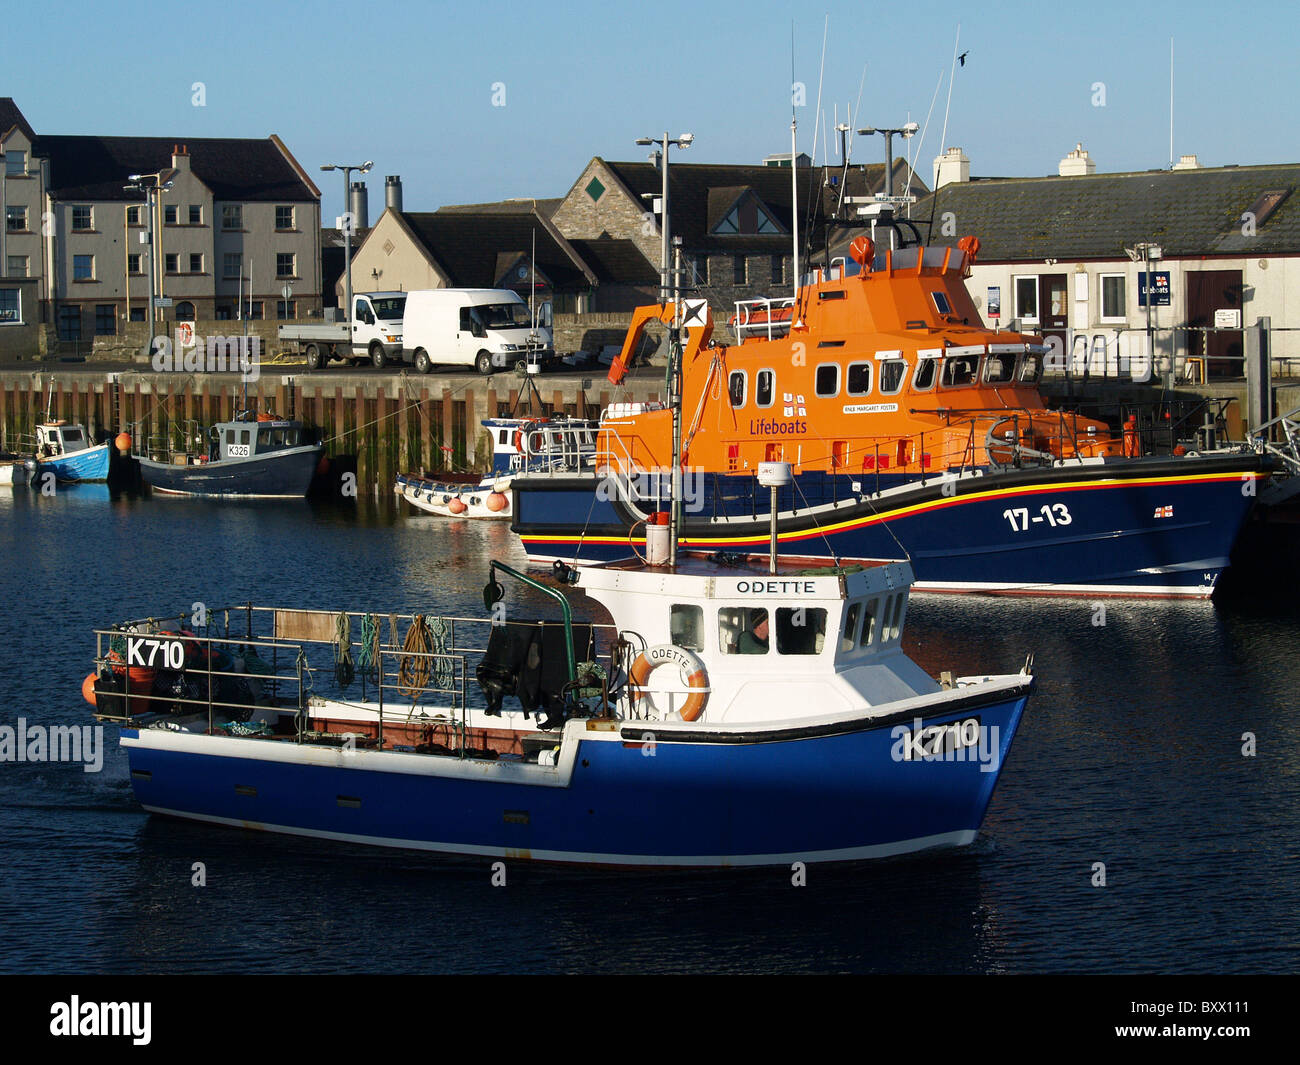 A small fishing boat passes the Kirkwall Lifeboat, in the Orkney Islands, Scotland - Stock Image